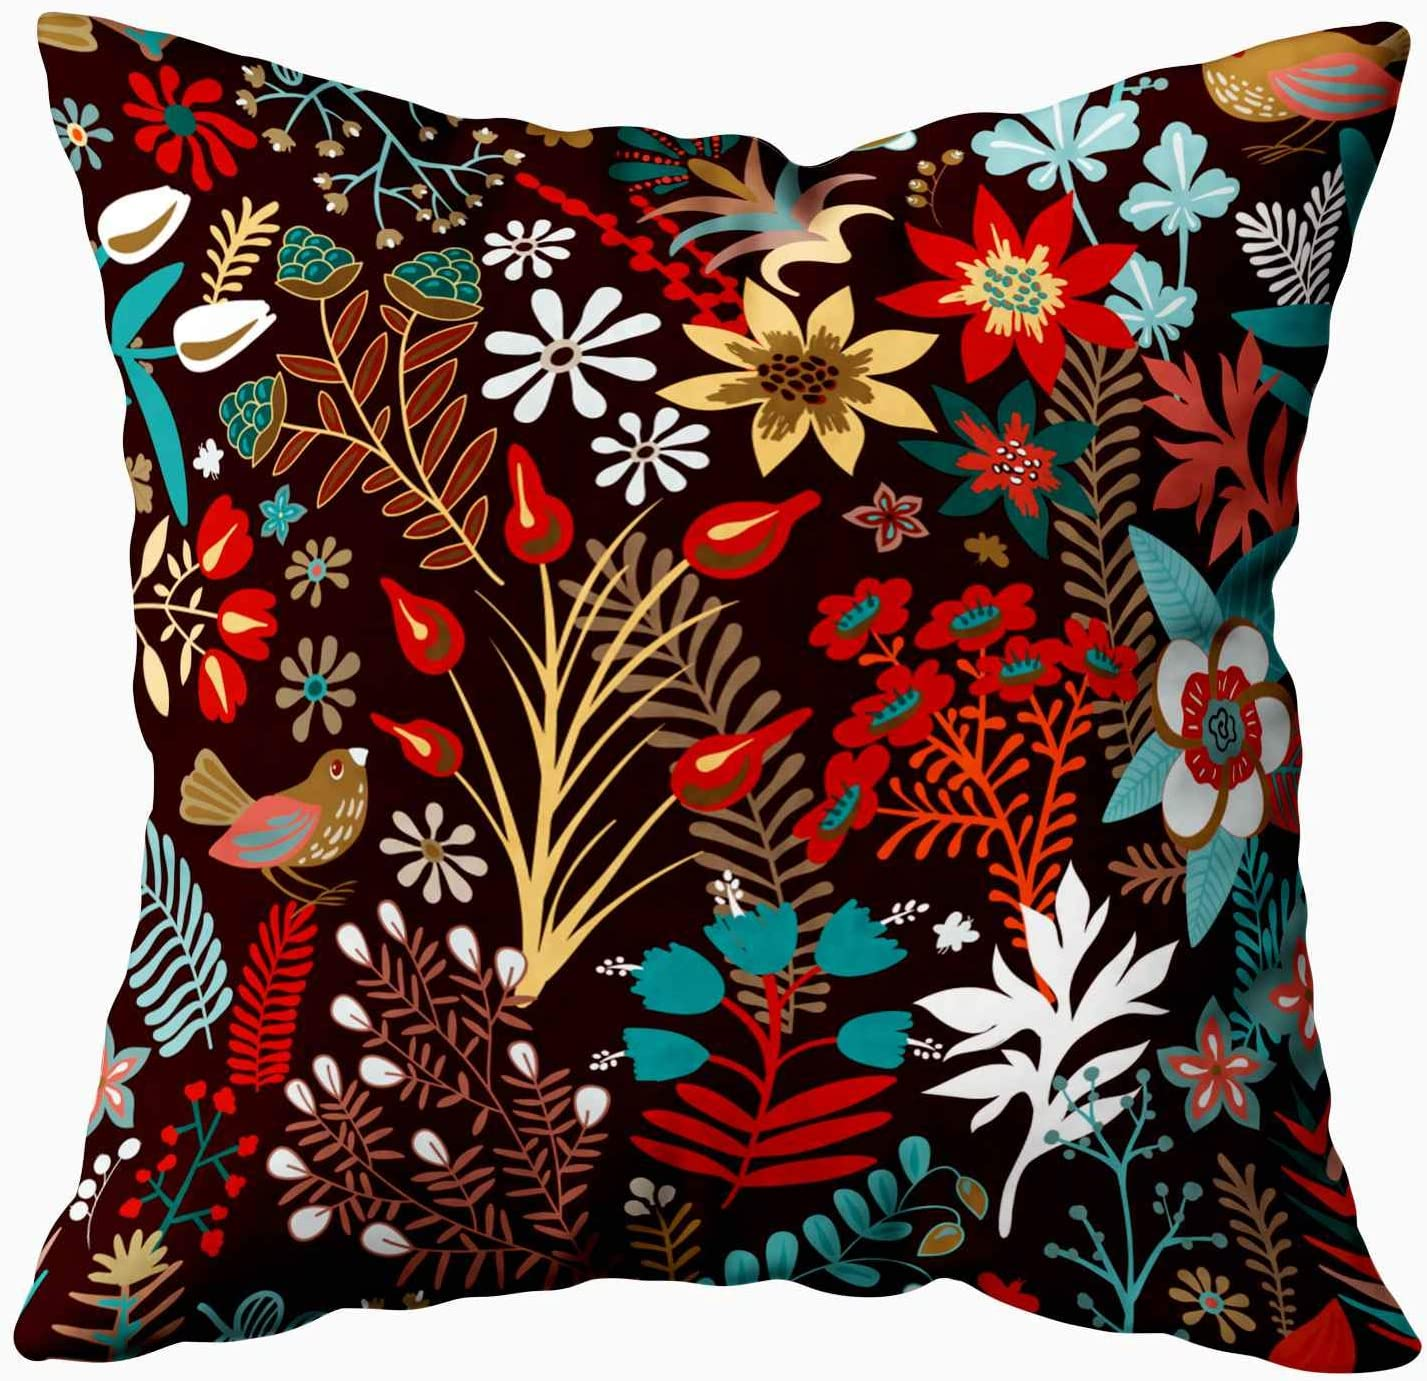 Amazon Com Shorping Decorative Throw Pillow Covers Zippered Covers Pillowcases 16x16inch Throw Pillow Covers Pattern Stylized Flowers Plants For Home Sofa Bedding Home Kitchen